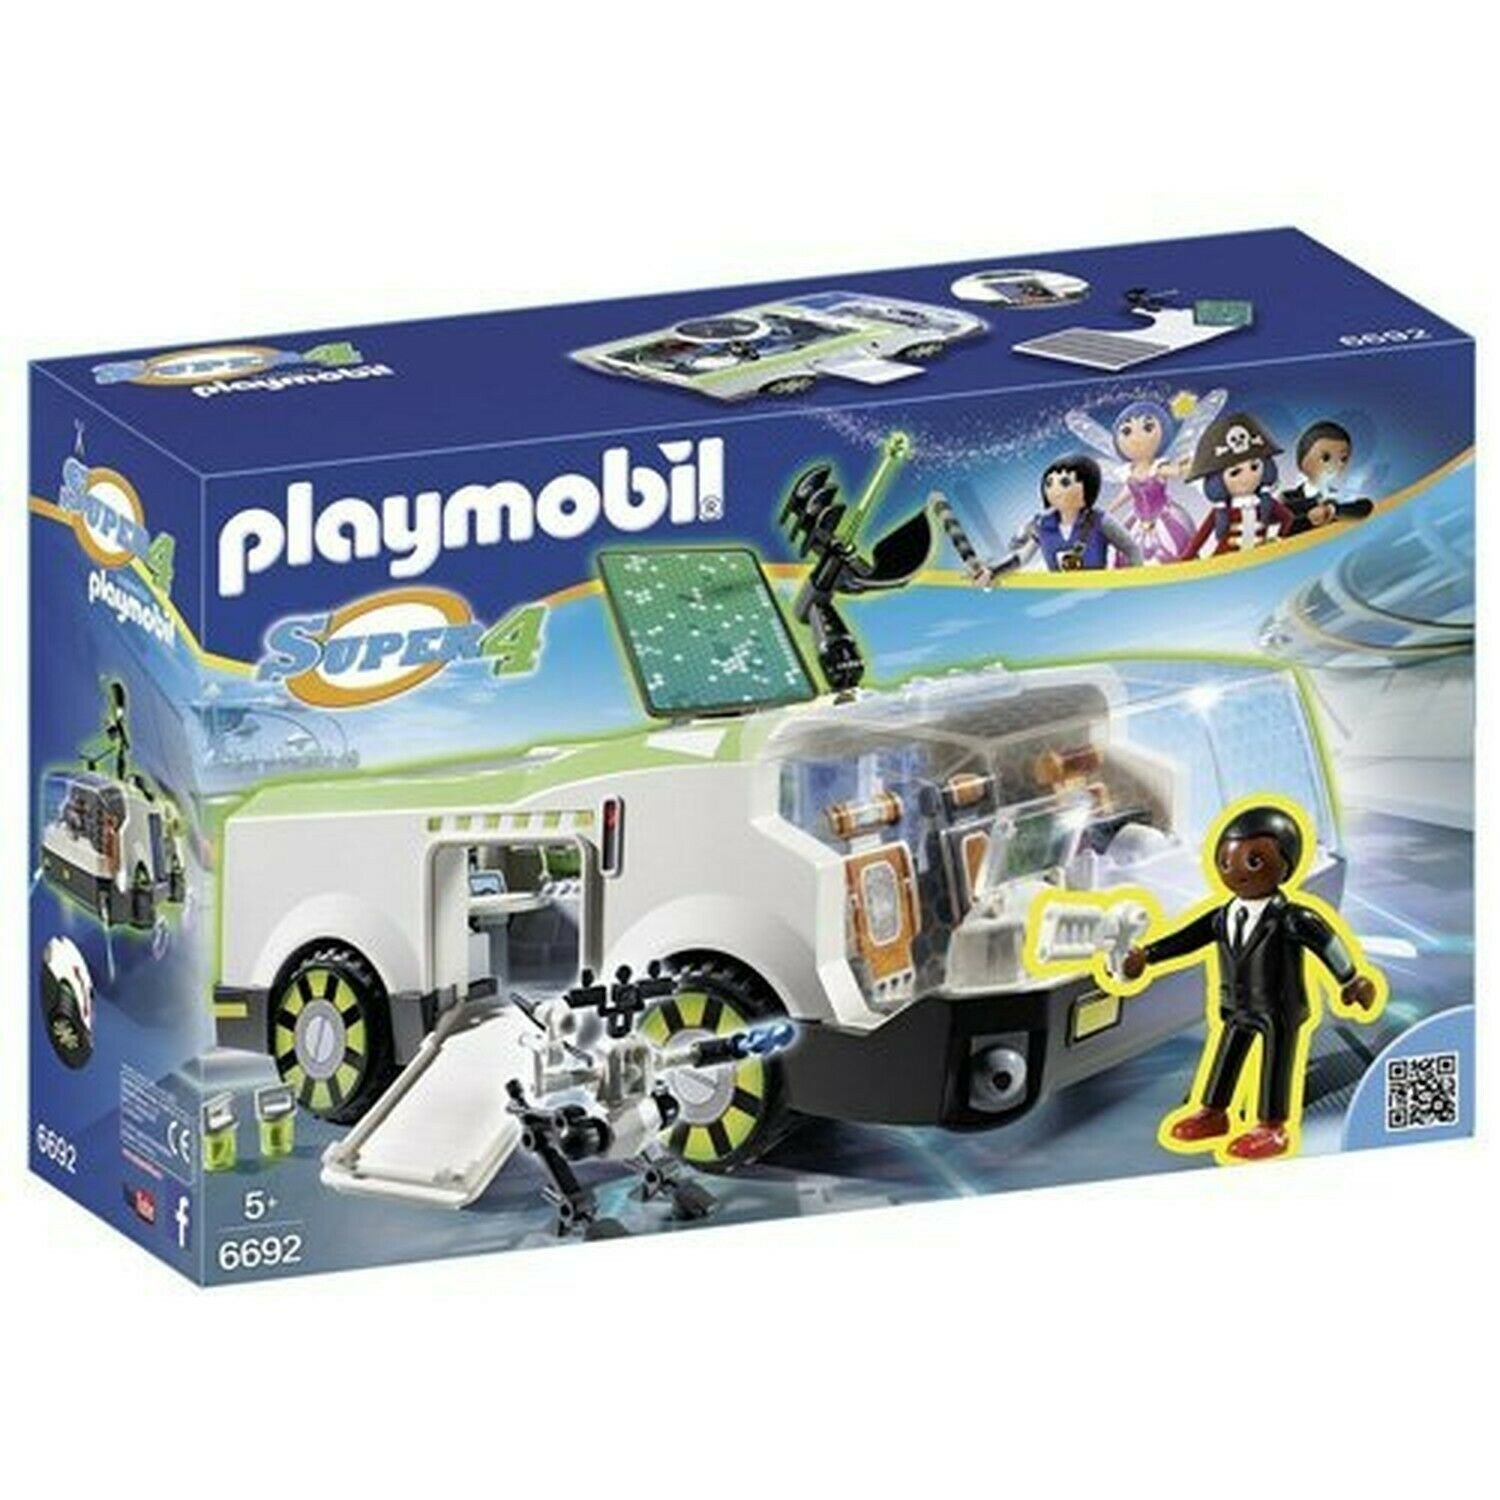 Playmobil 6692 Super 4 Techno Chameleon with Gene